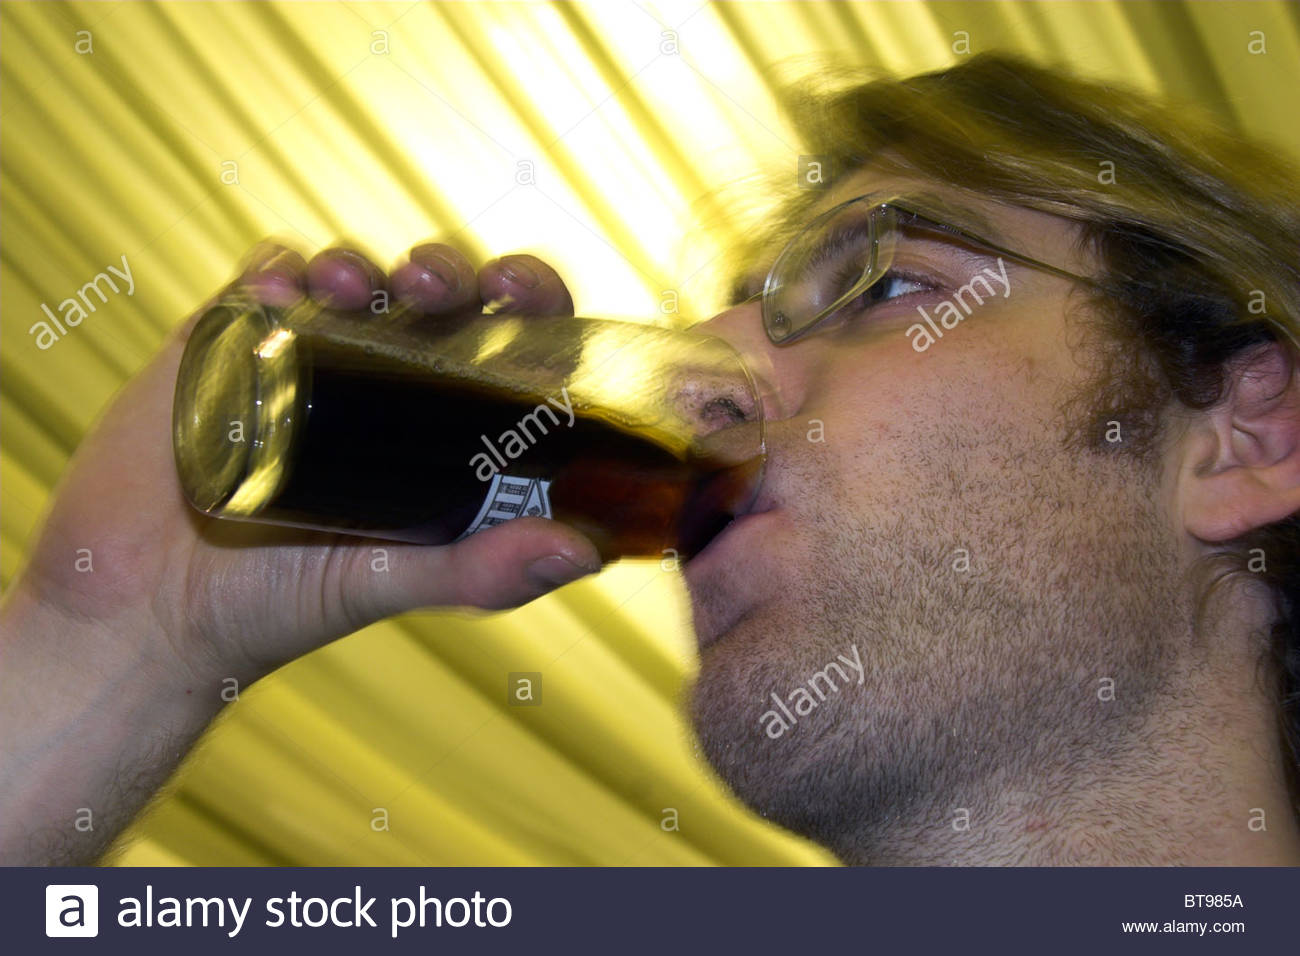 Man drinking a dark ale at the Bath Beer Festival 2010 in England, UK. Stock Photo